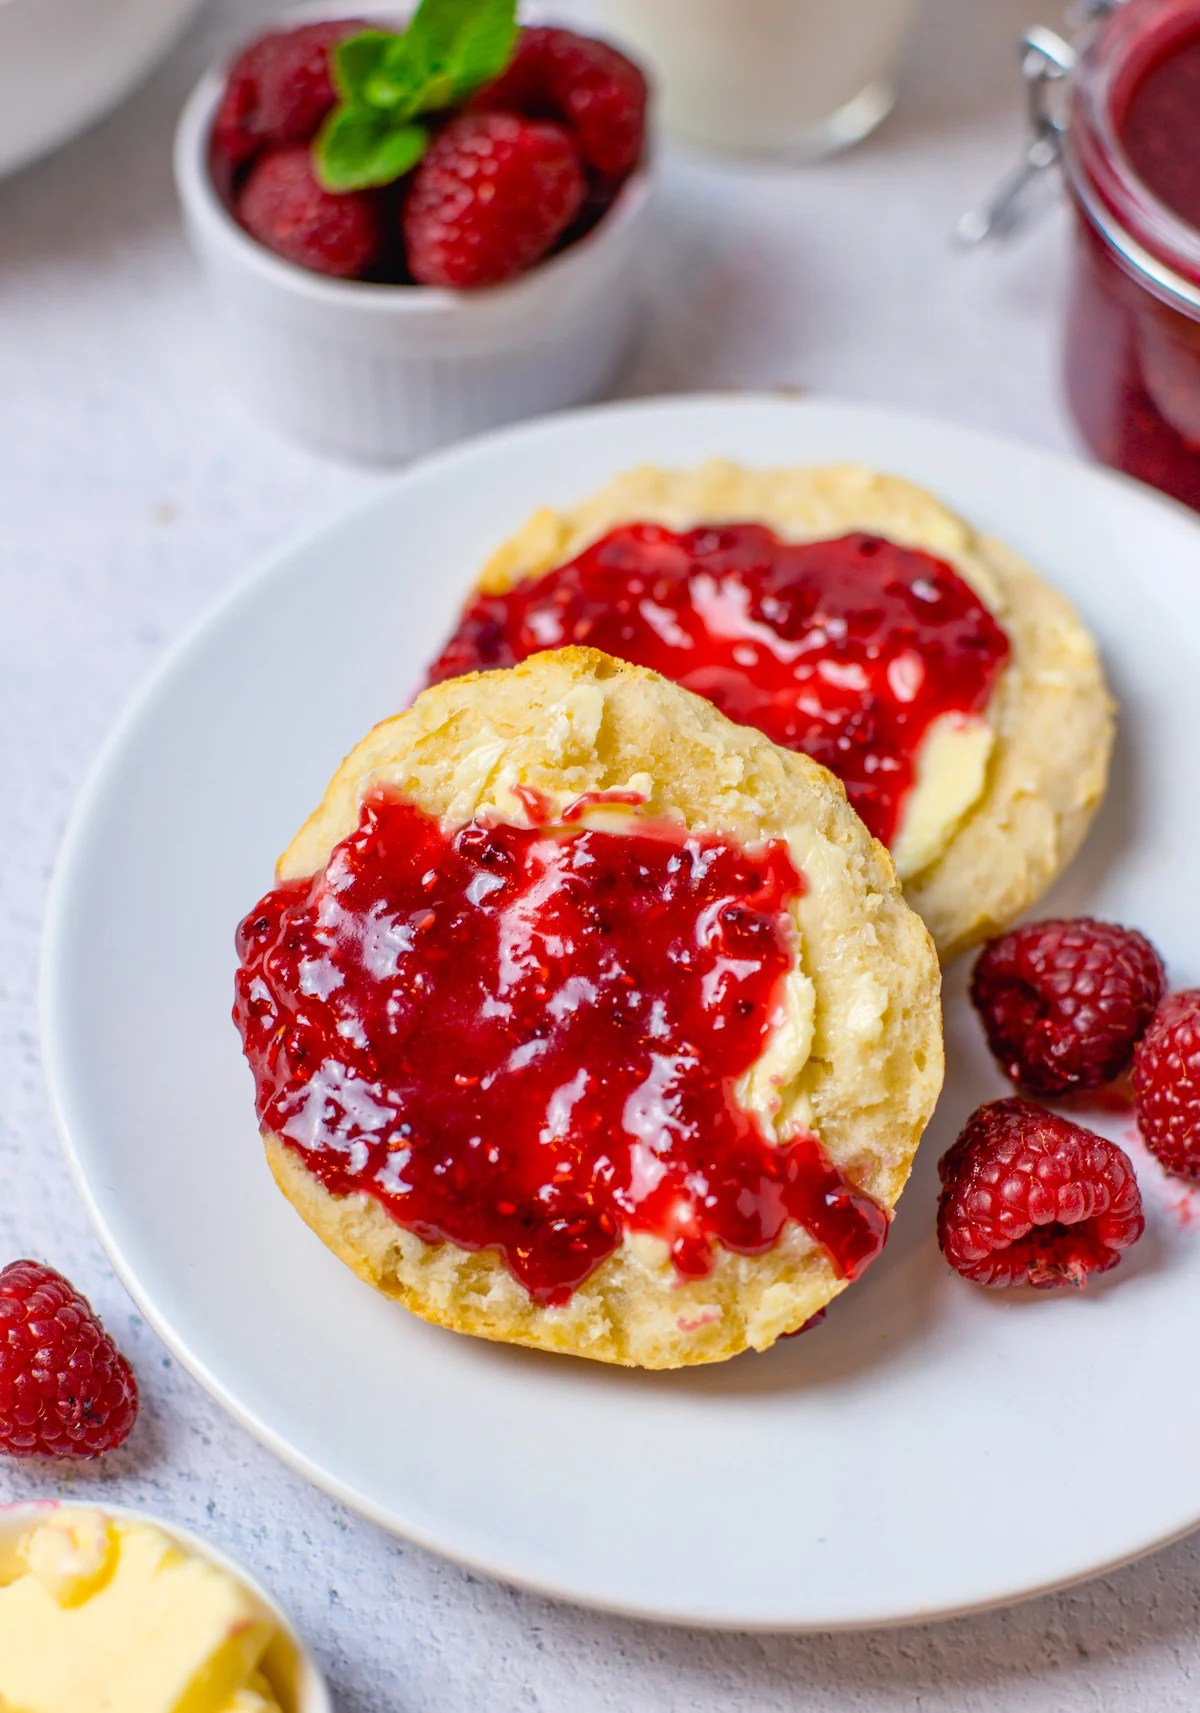 Biscuits spread with Raspberry Curd Recipe